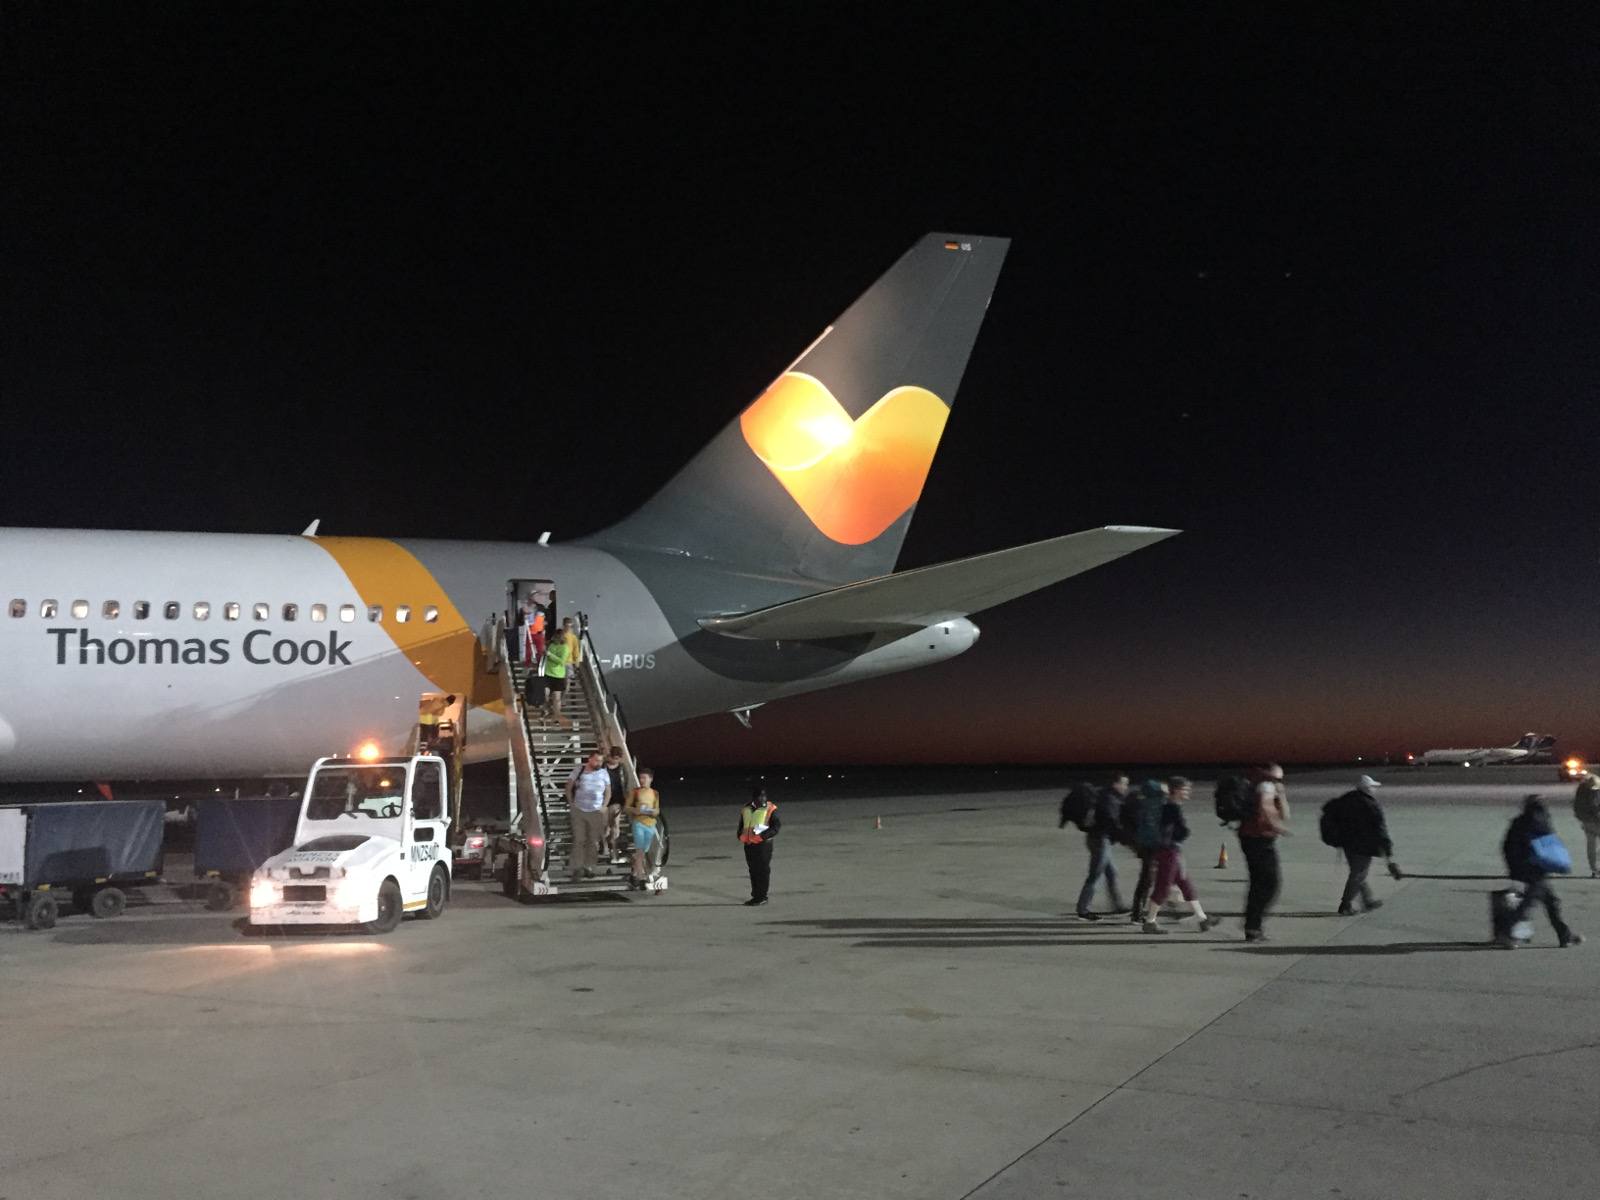 A Condor airplane at Windhoek airport, just before the dawn